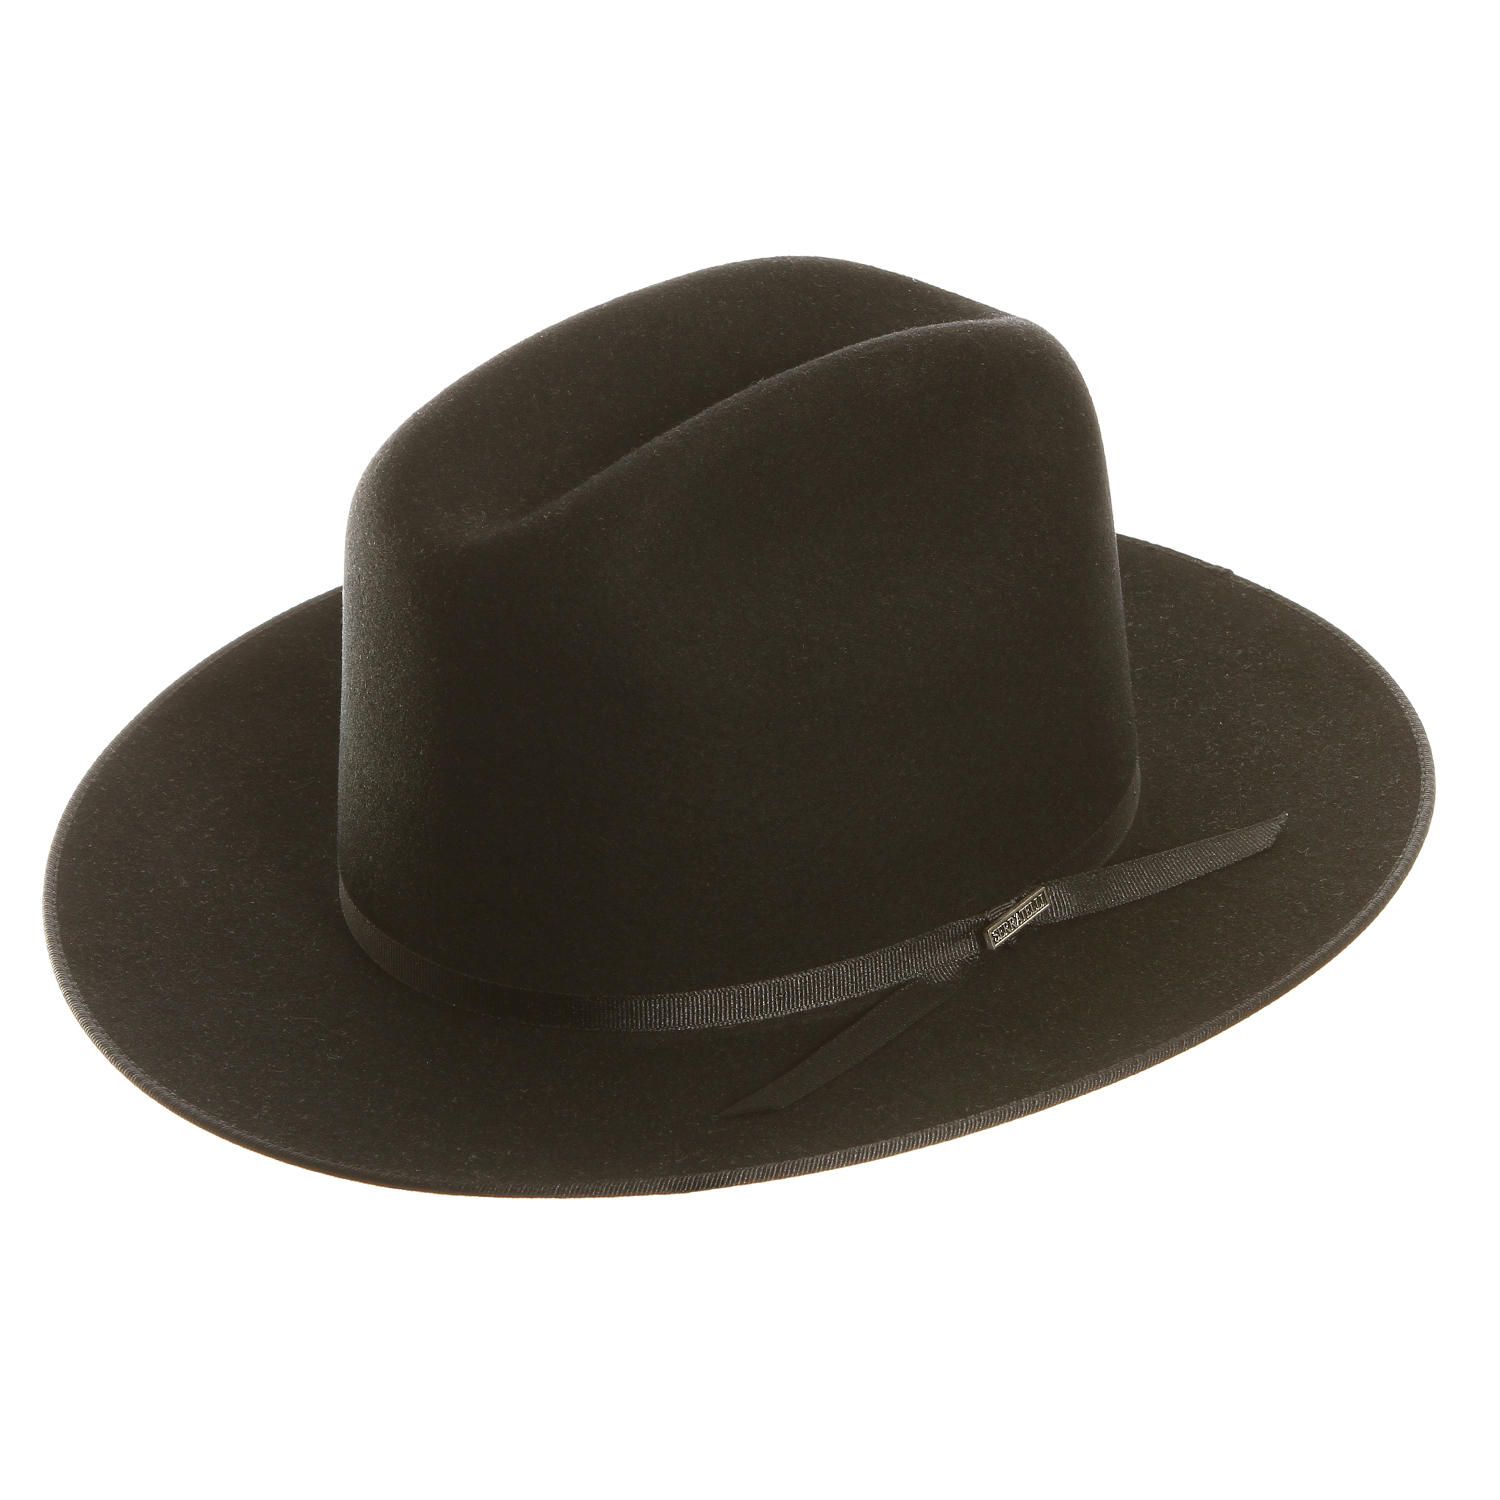 Bootdaddy Collection With Serratelli Presidential Felt Hat